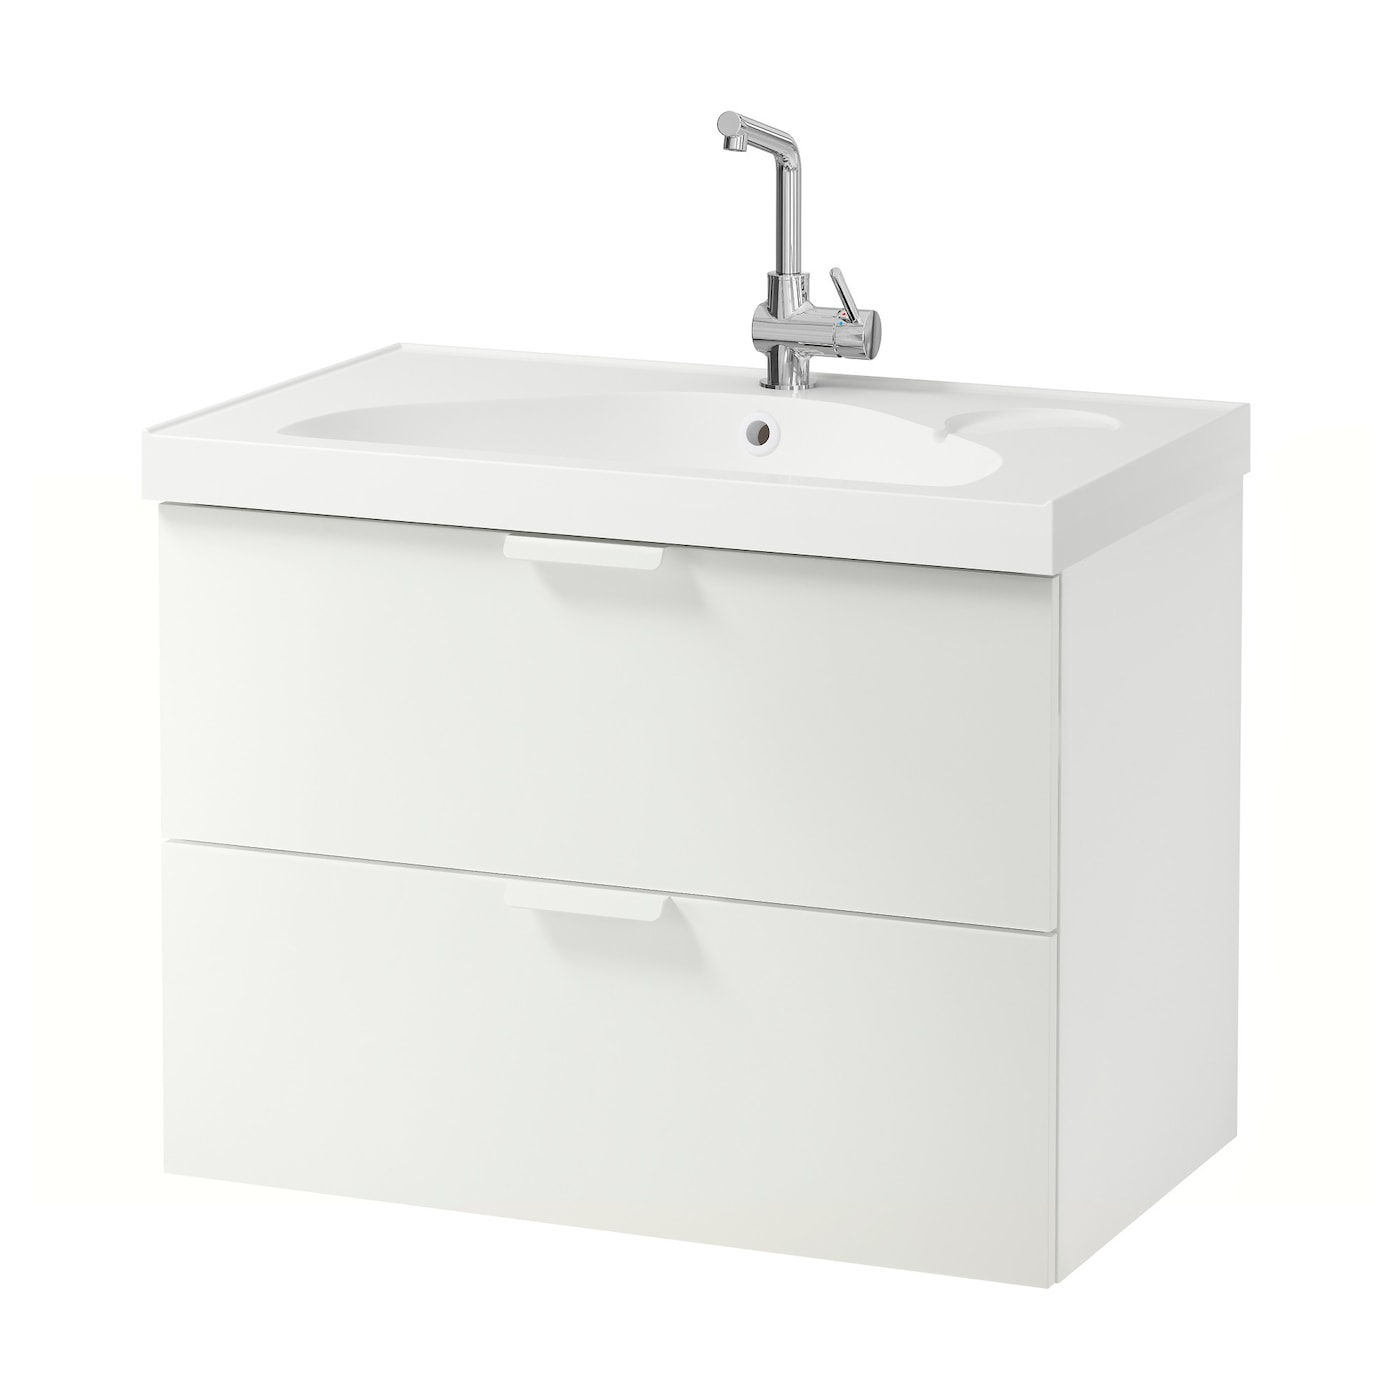 bathroom sink cabinets with drawers bathroom vanity units ikea ireland dublin 22312